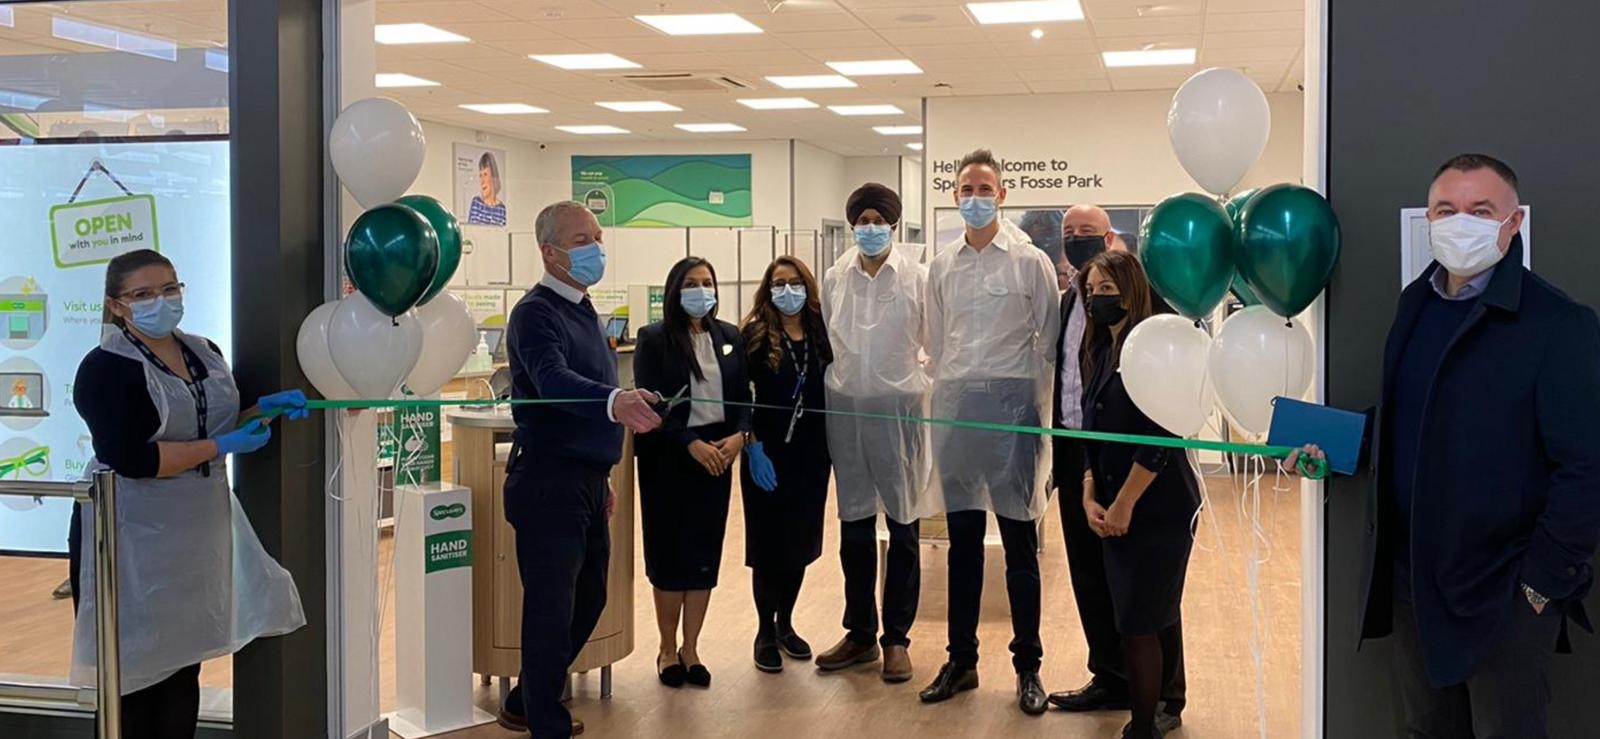 Our 65th Specsavers-in-Sainsbury's store opens!